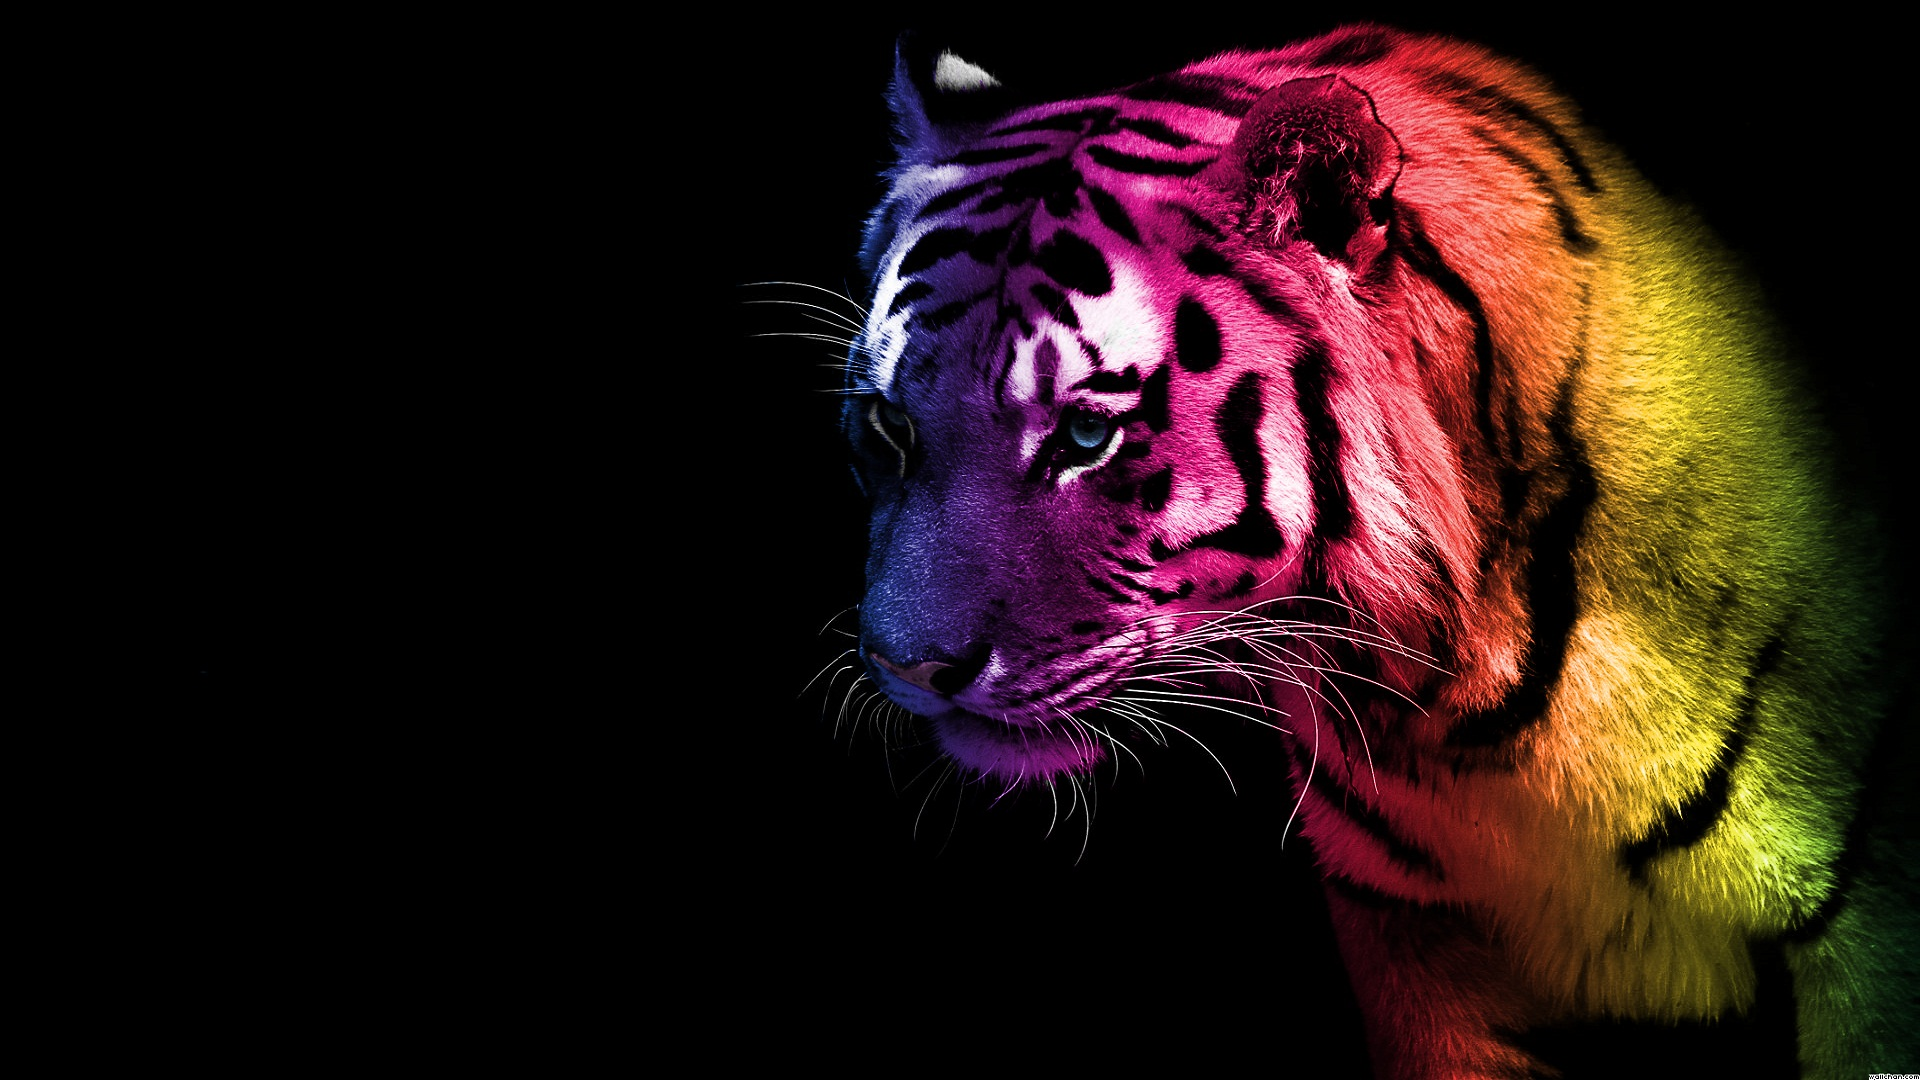 tiger wallpaper in hd